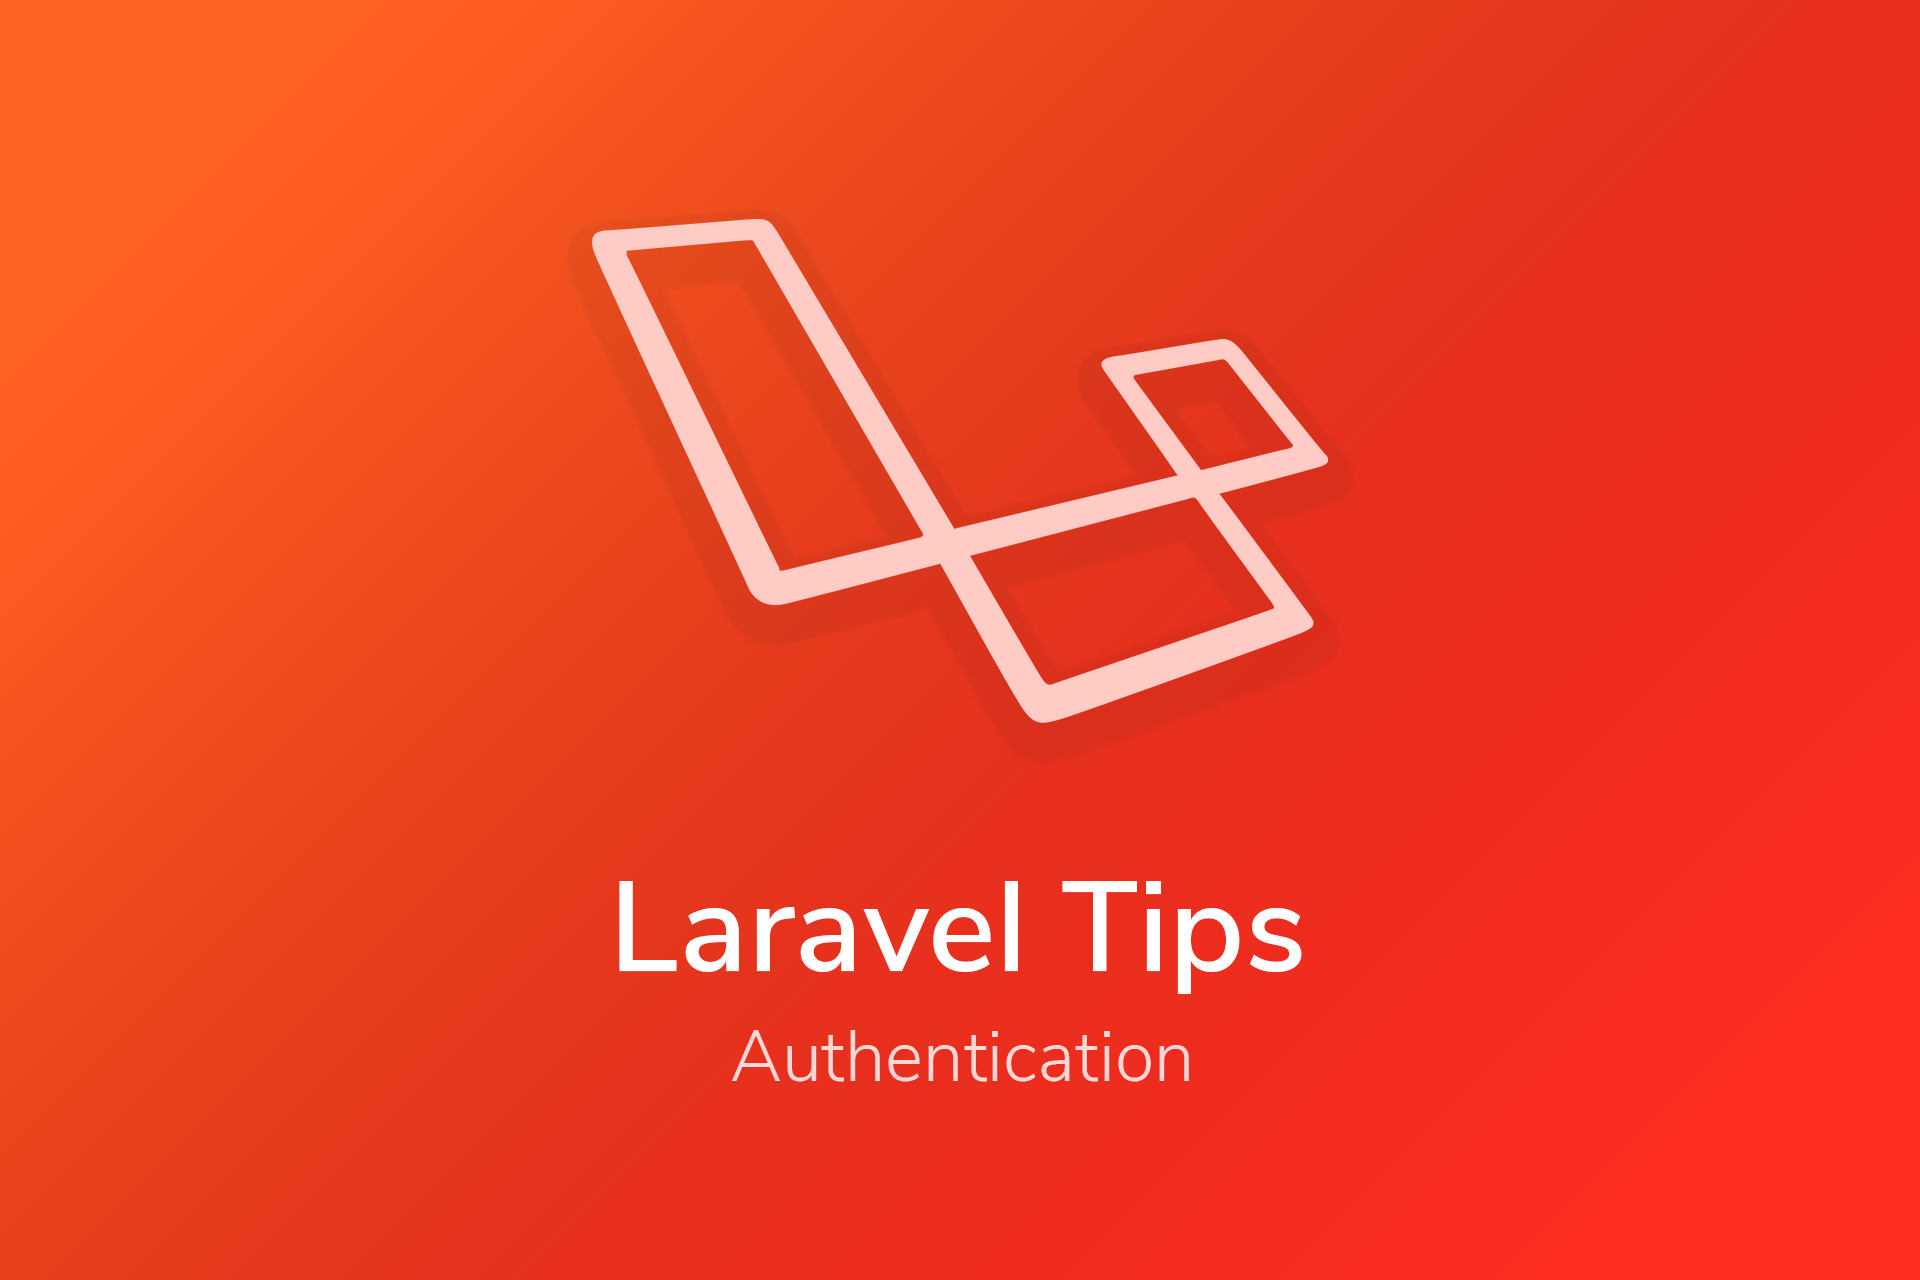 Featured Image of How to redirect back to original URL after successful login in Laravel